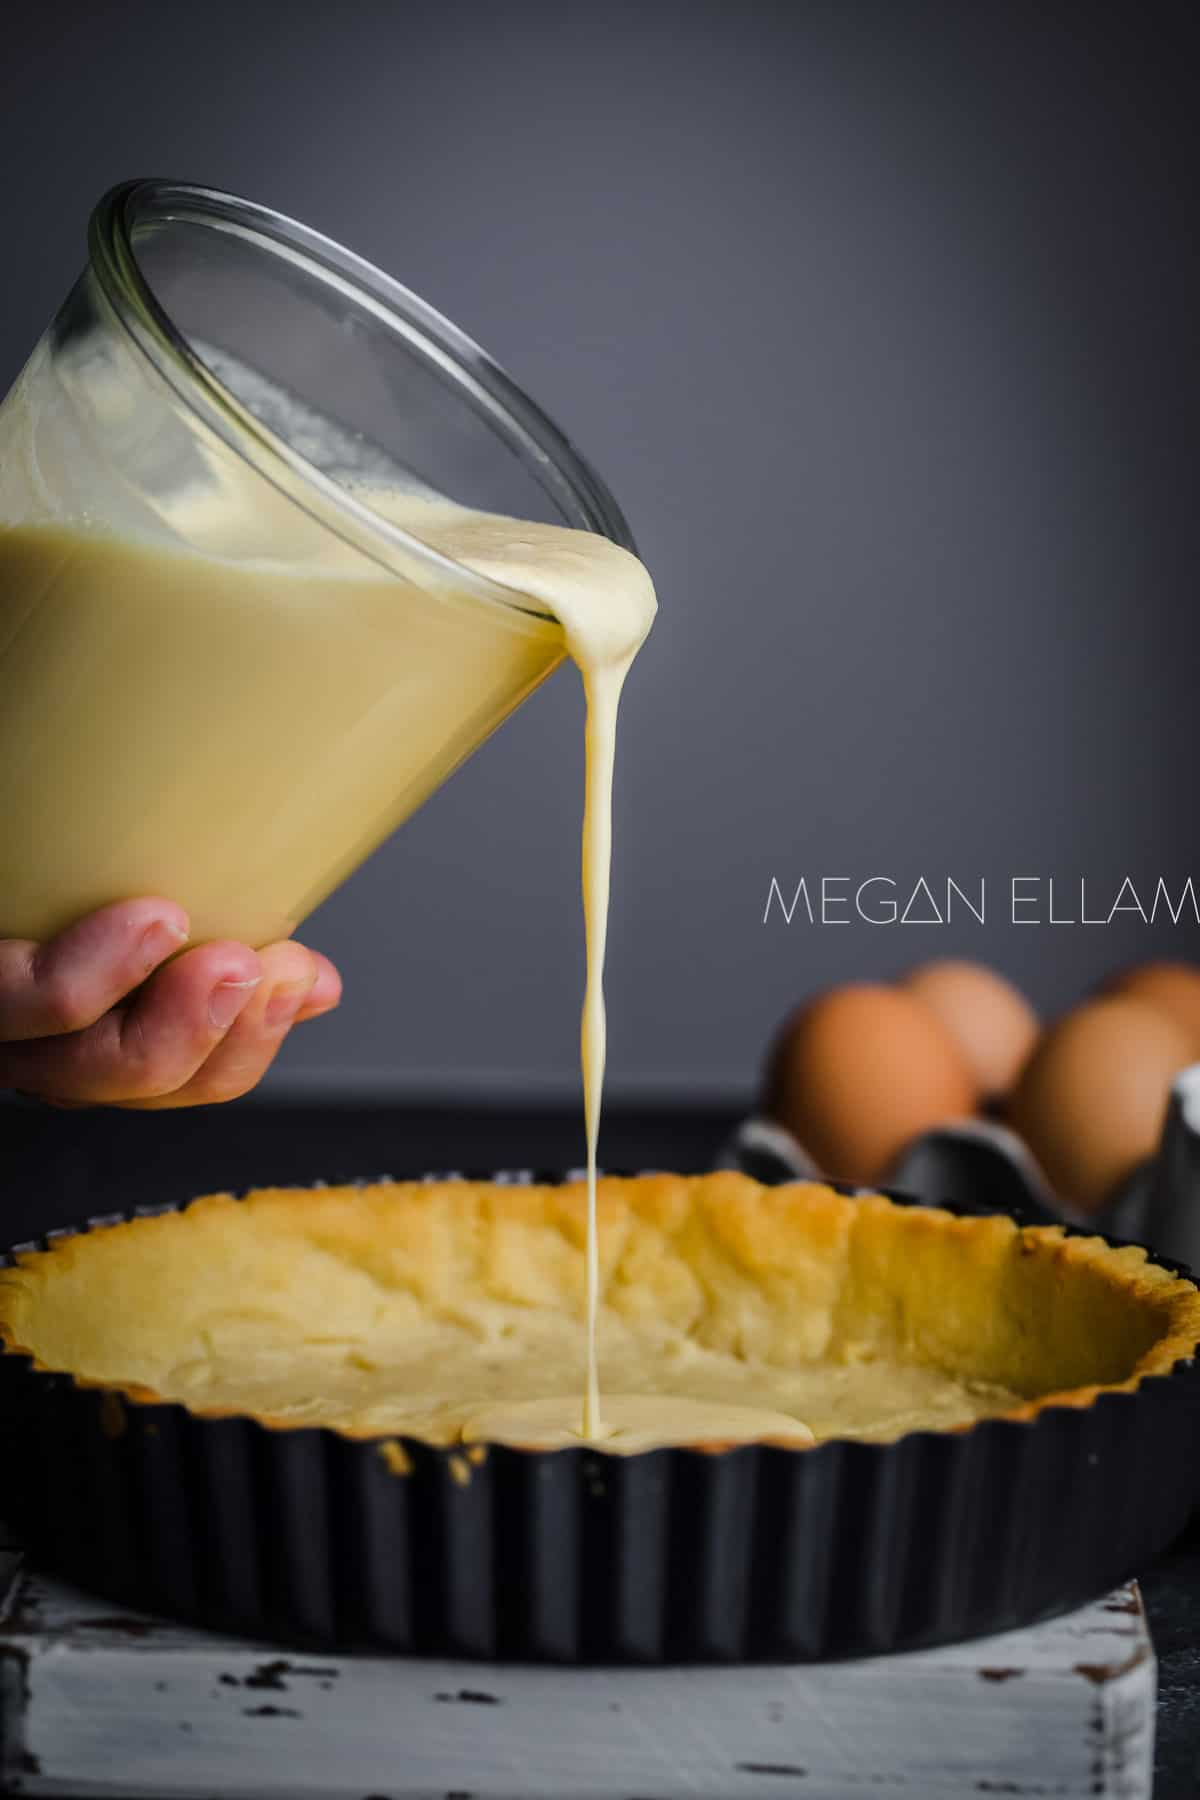 Custard being poured into a pie shell